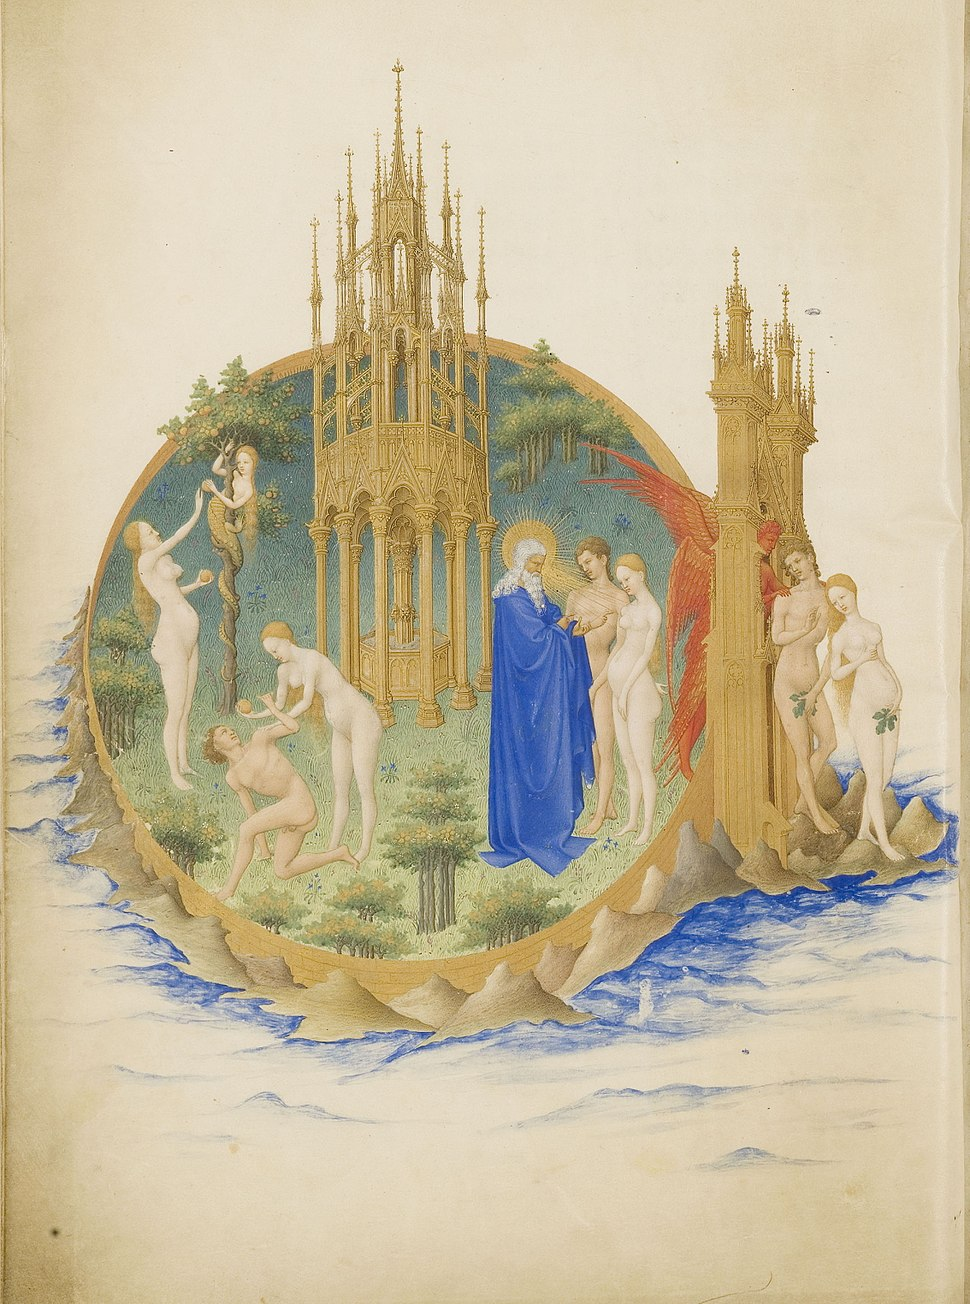 Folio 25v - The Garden of Eden